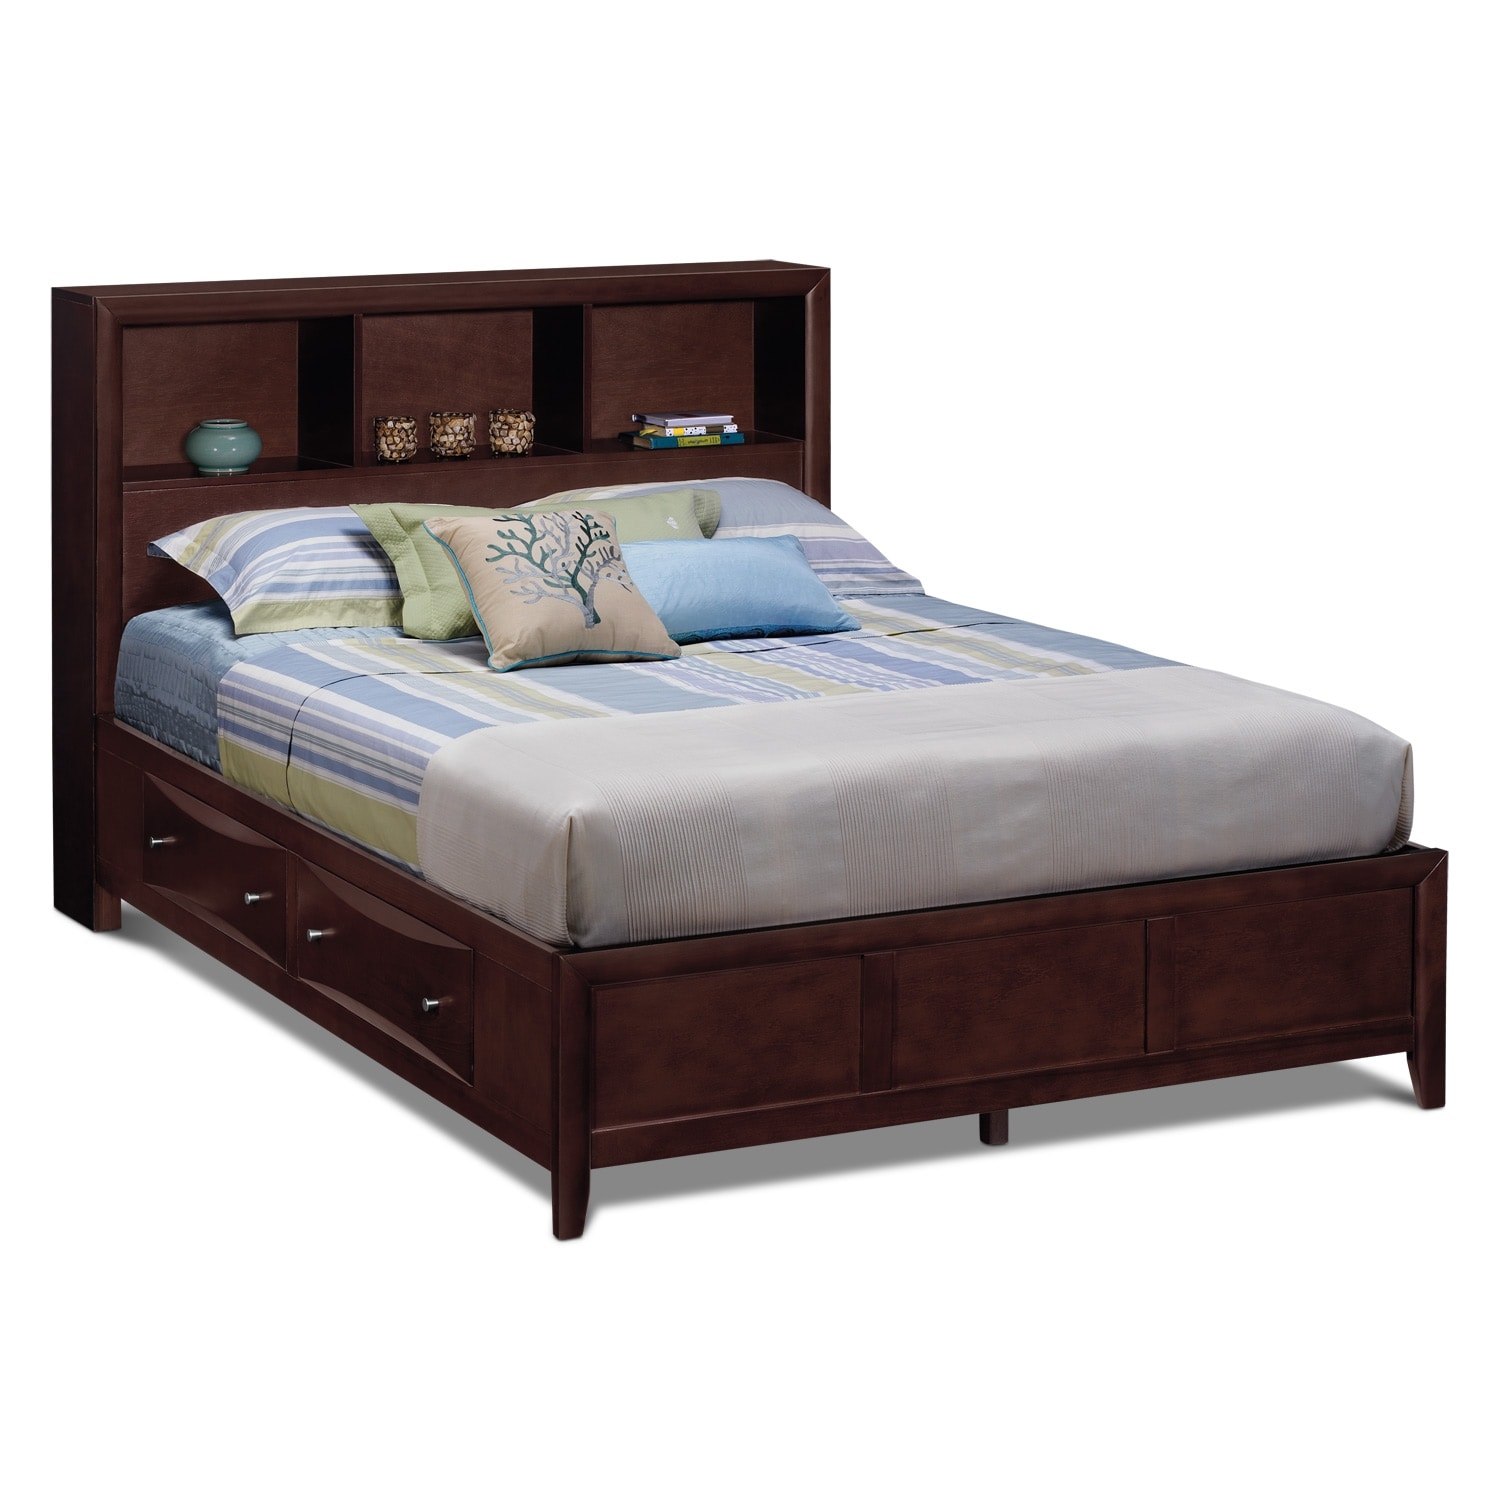 Bedroom Furniture - Clarion King Wall Bed